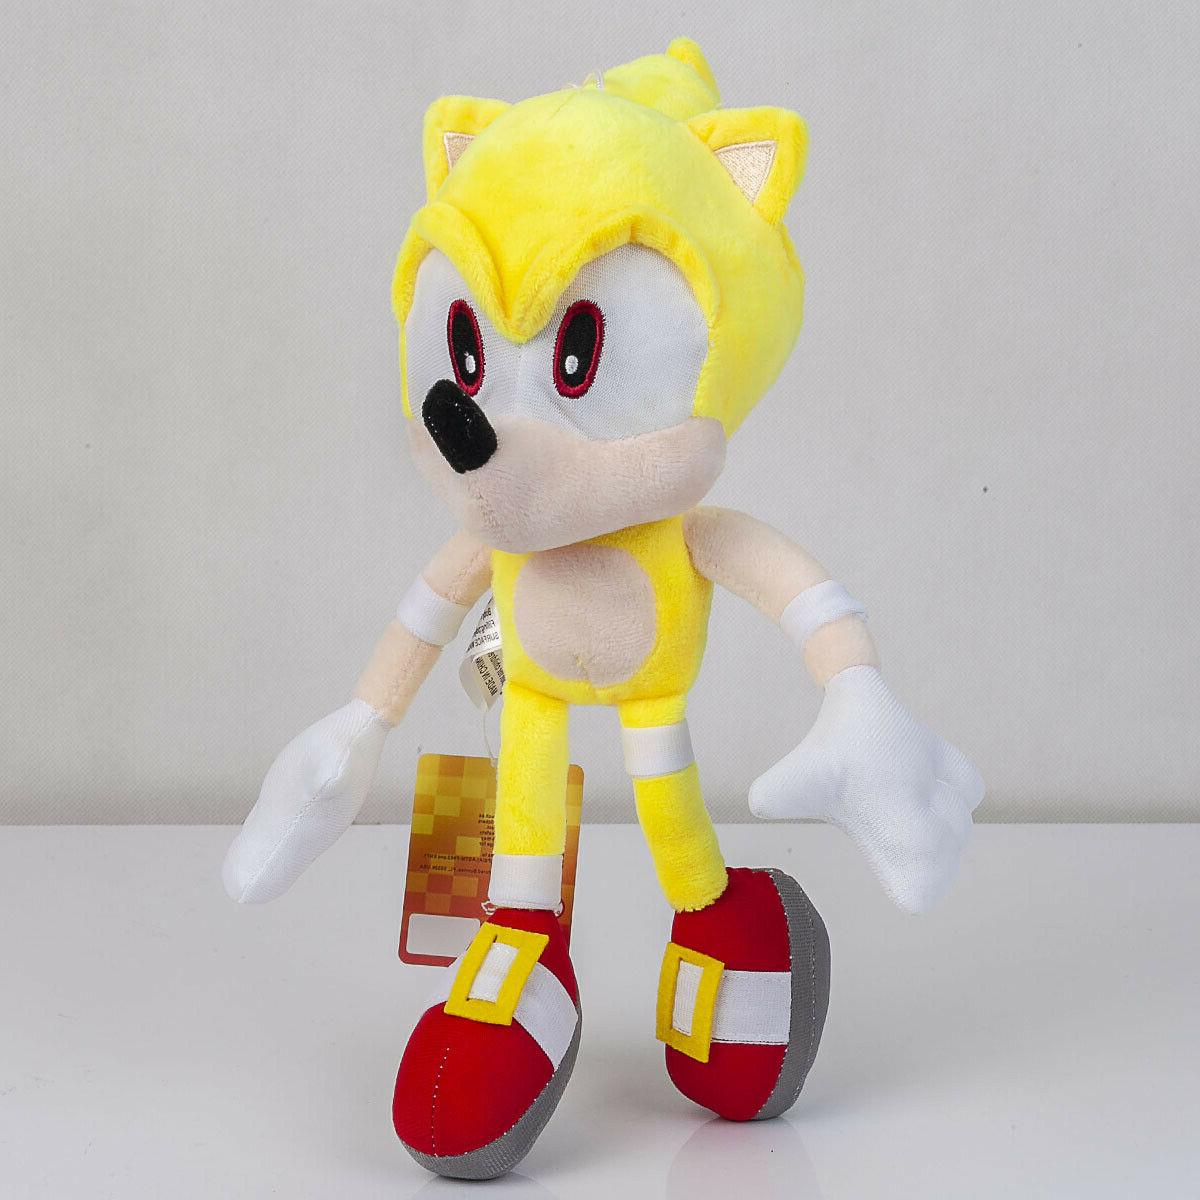 Super Sonic Plush Doll Stuffed Animal Plushie Soft Toy Gift 13 In